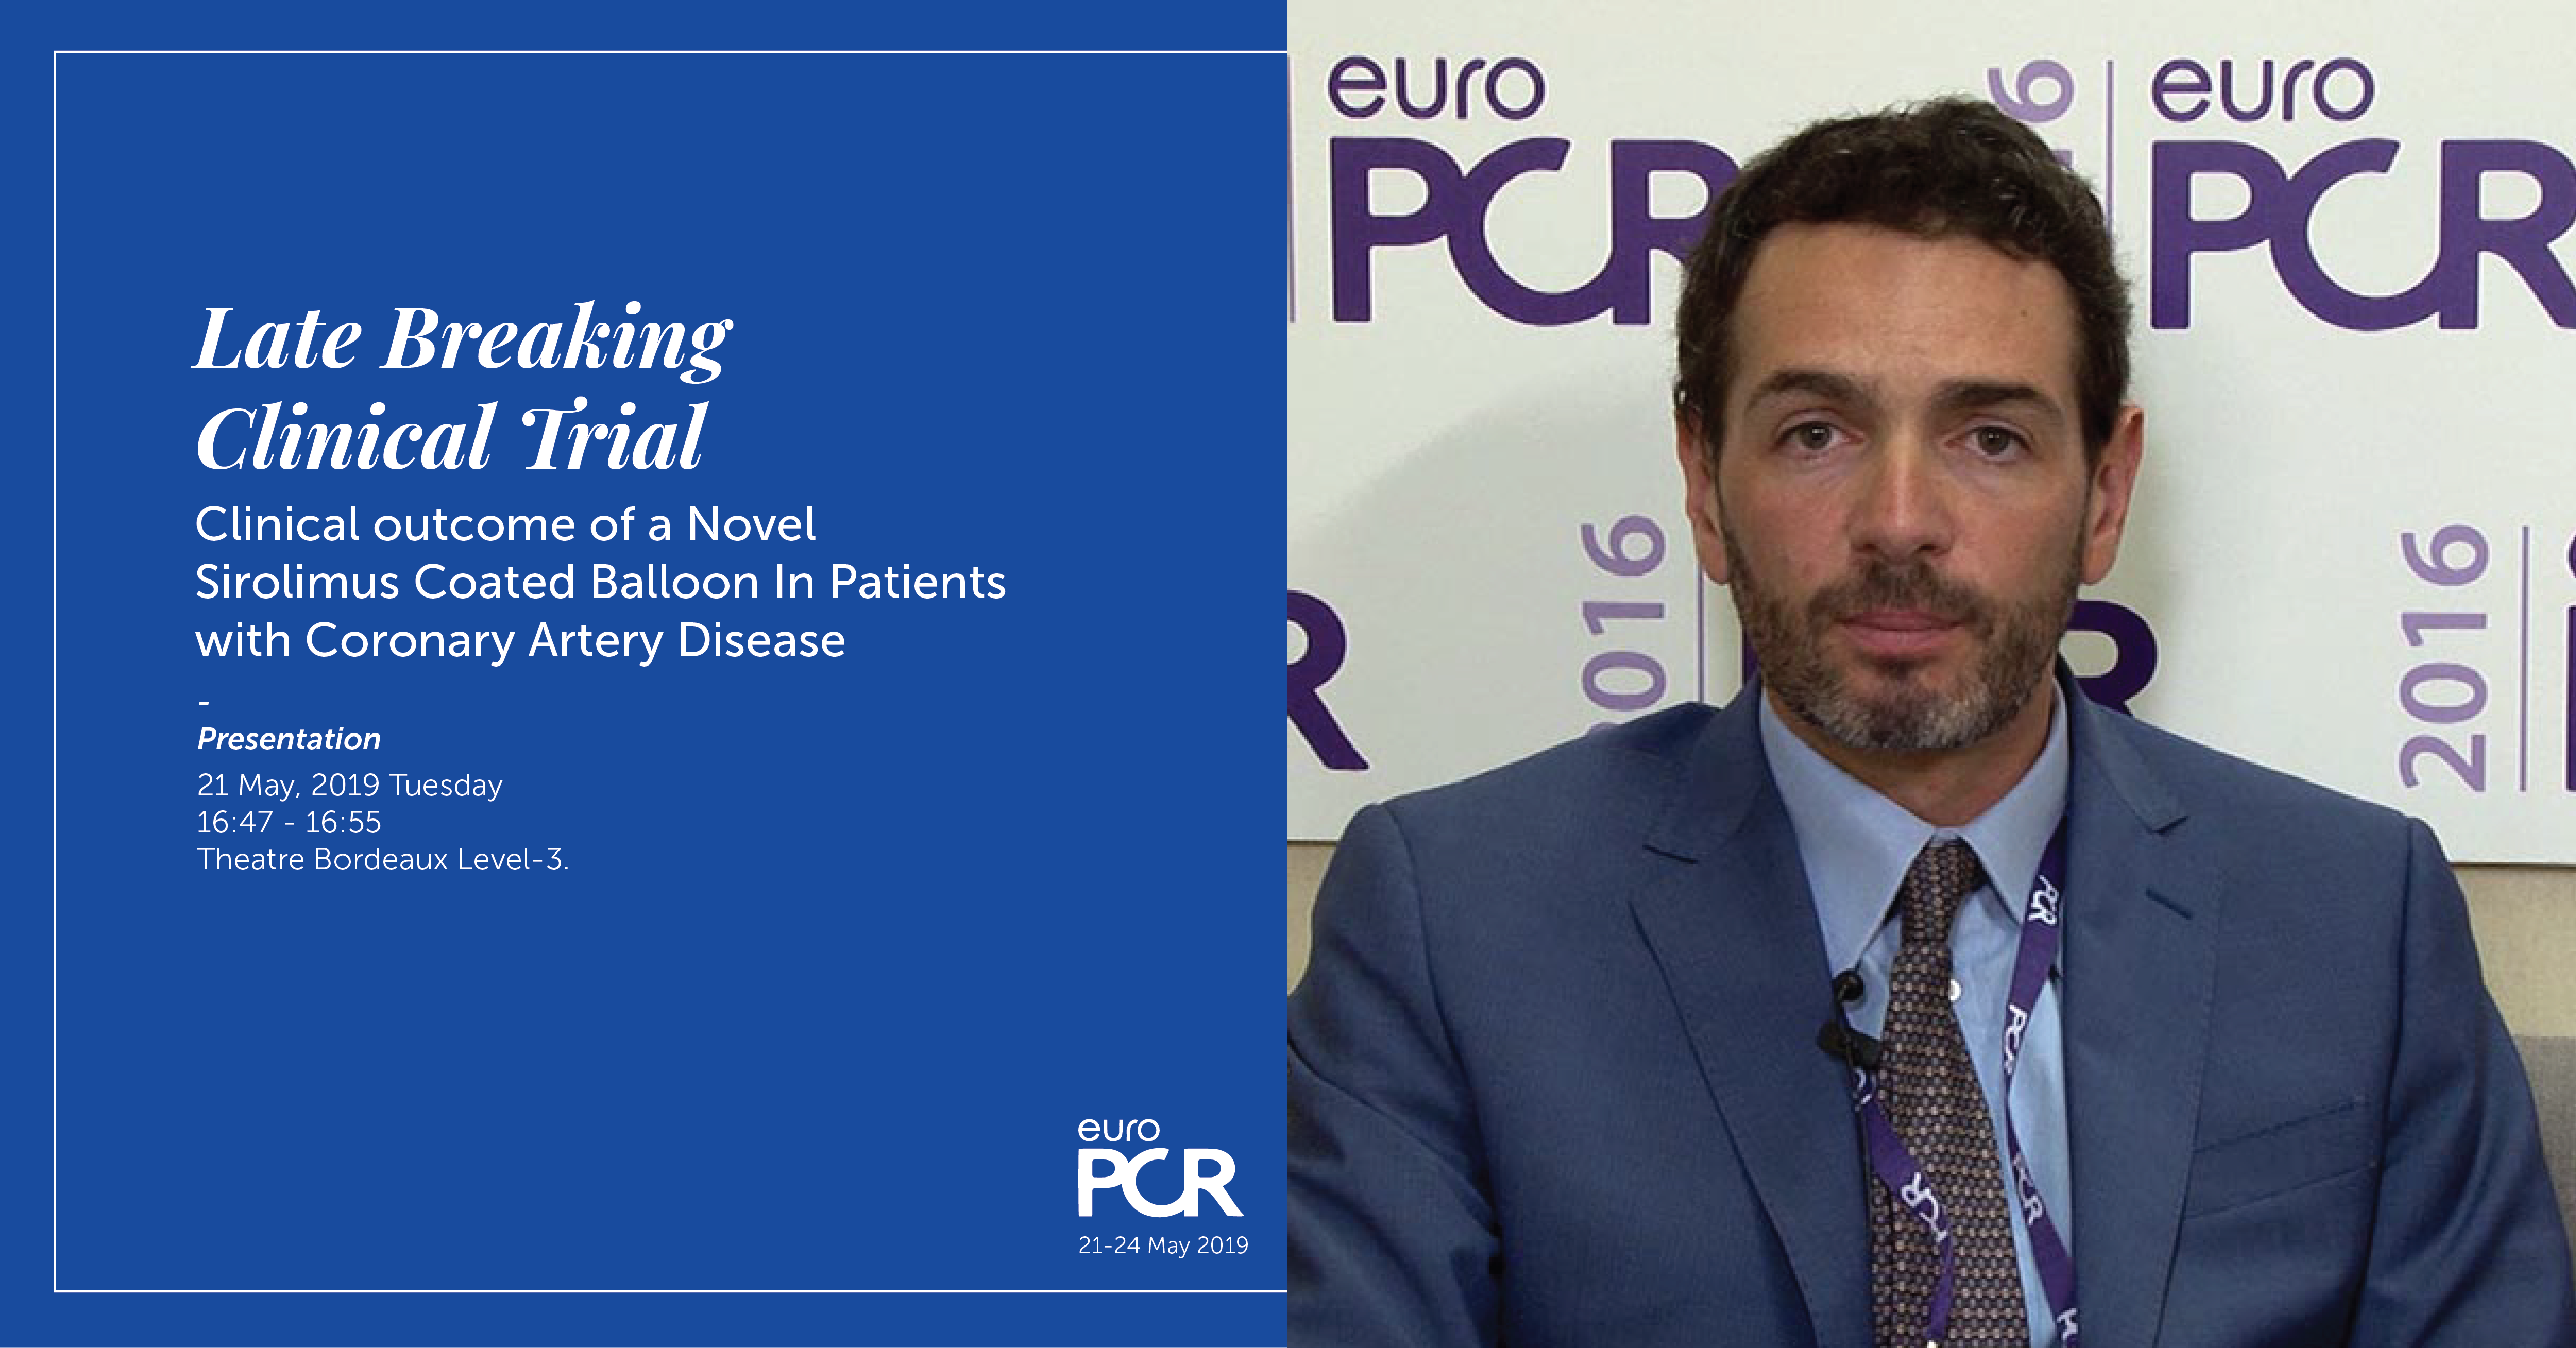 EASTBOURNE interim analysis-selected as LBCT at EuroPCR 2019